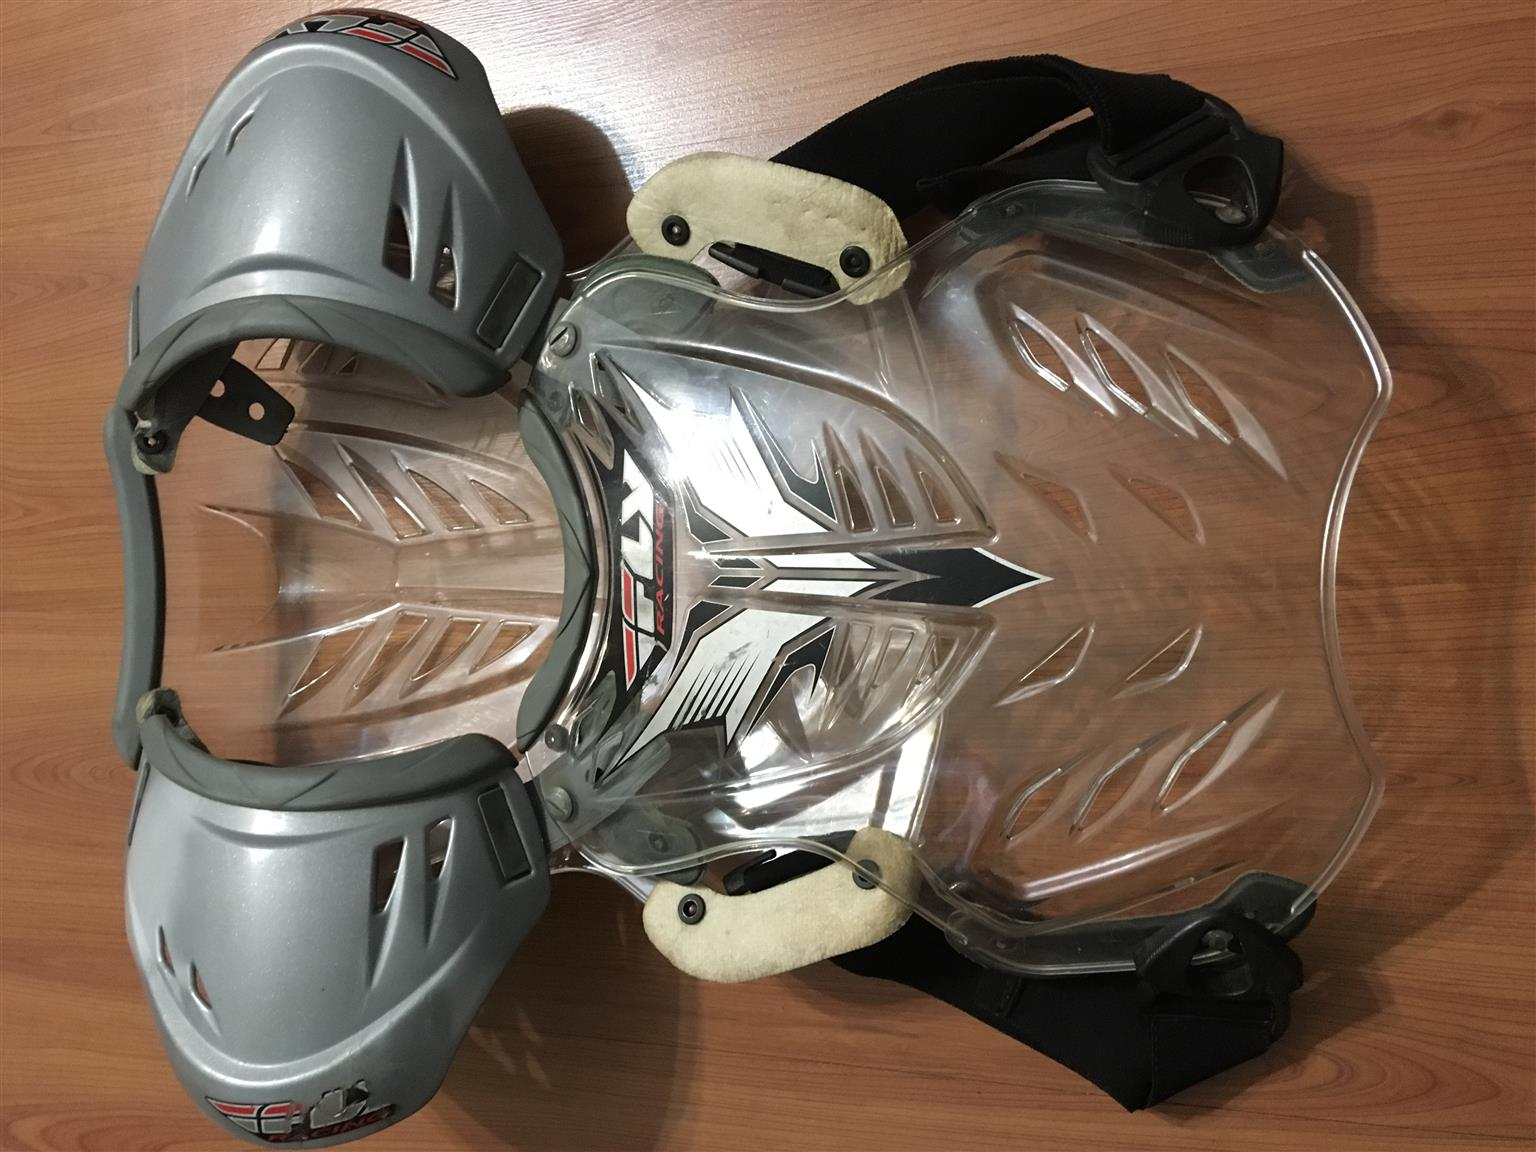 Chest protector vest with back and shoulder protection